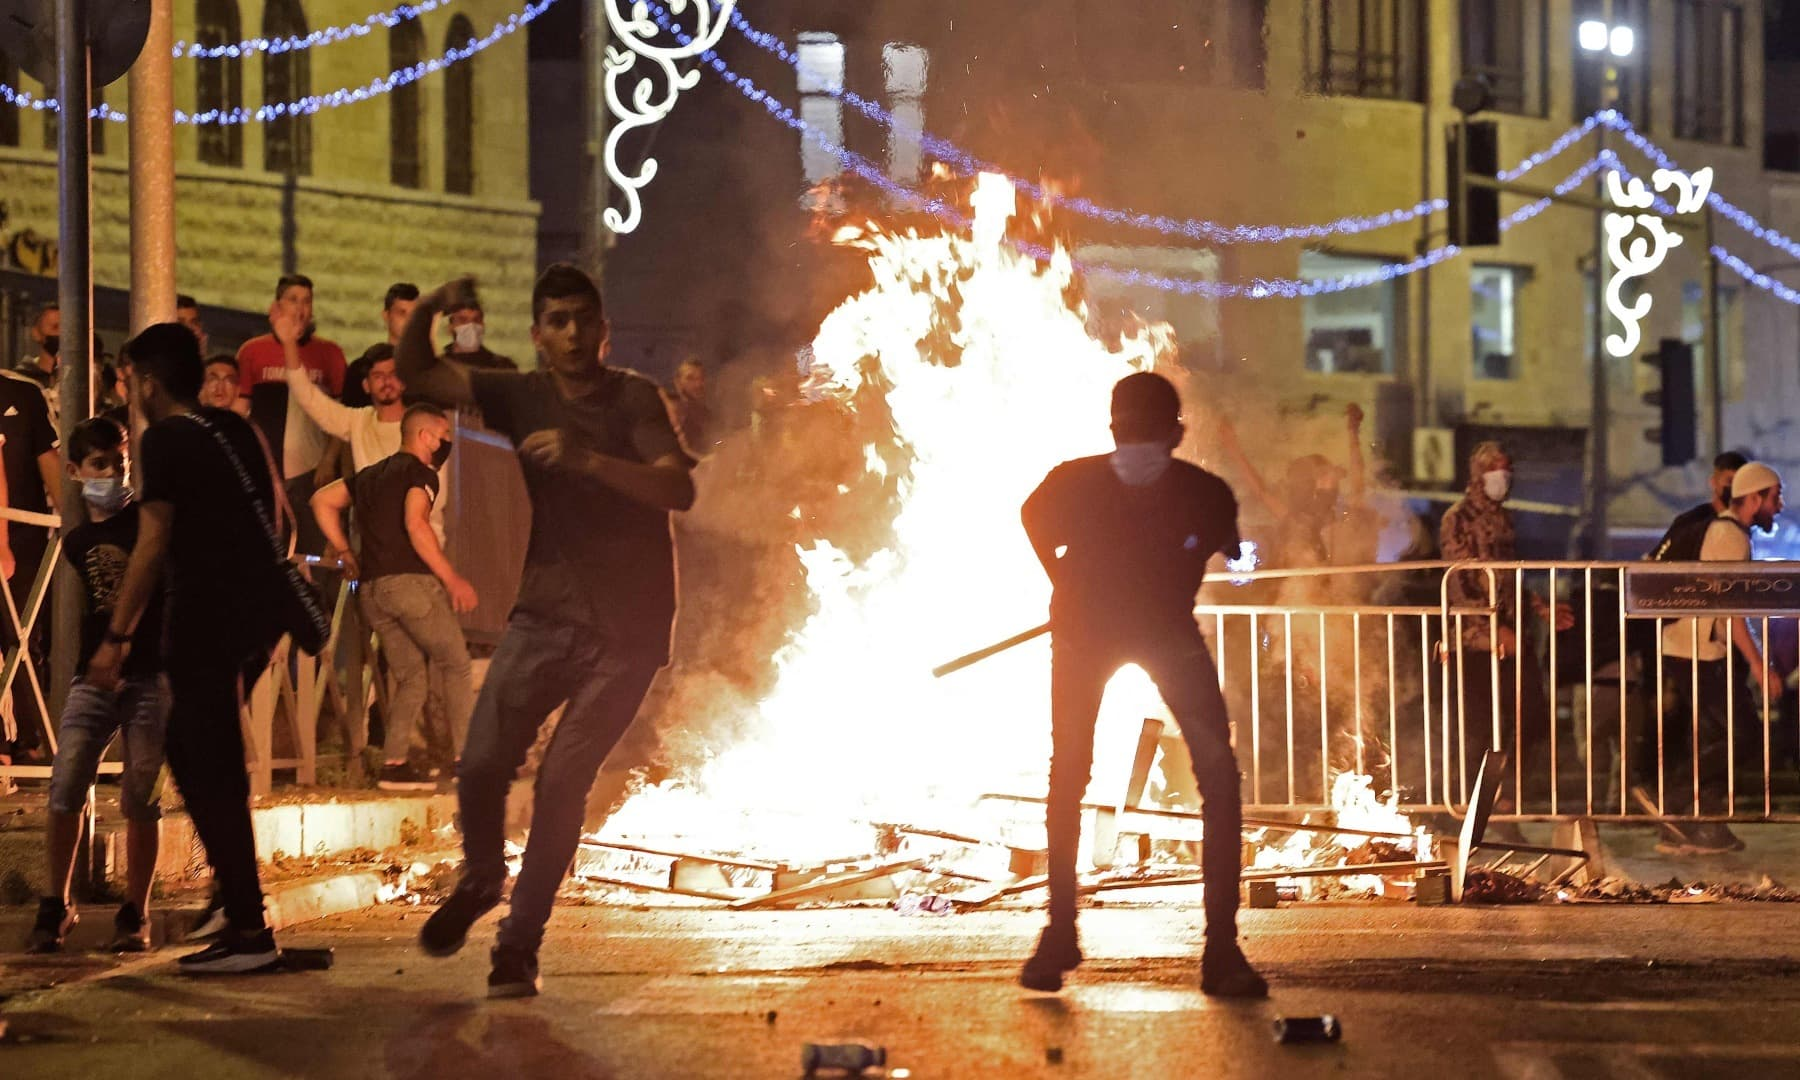 Palestinian protesters hurl stones at Israeli security forces amid clashes in Jerusalem's Old City on May 8. — AFP